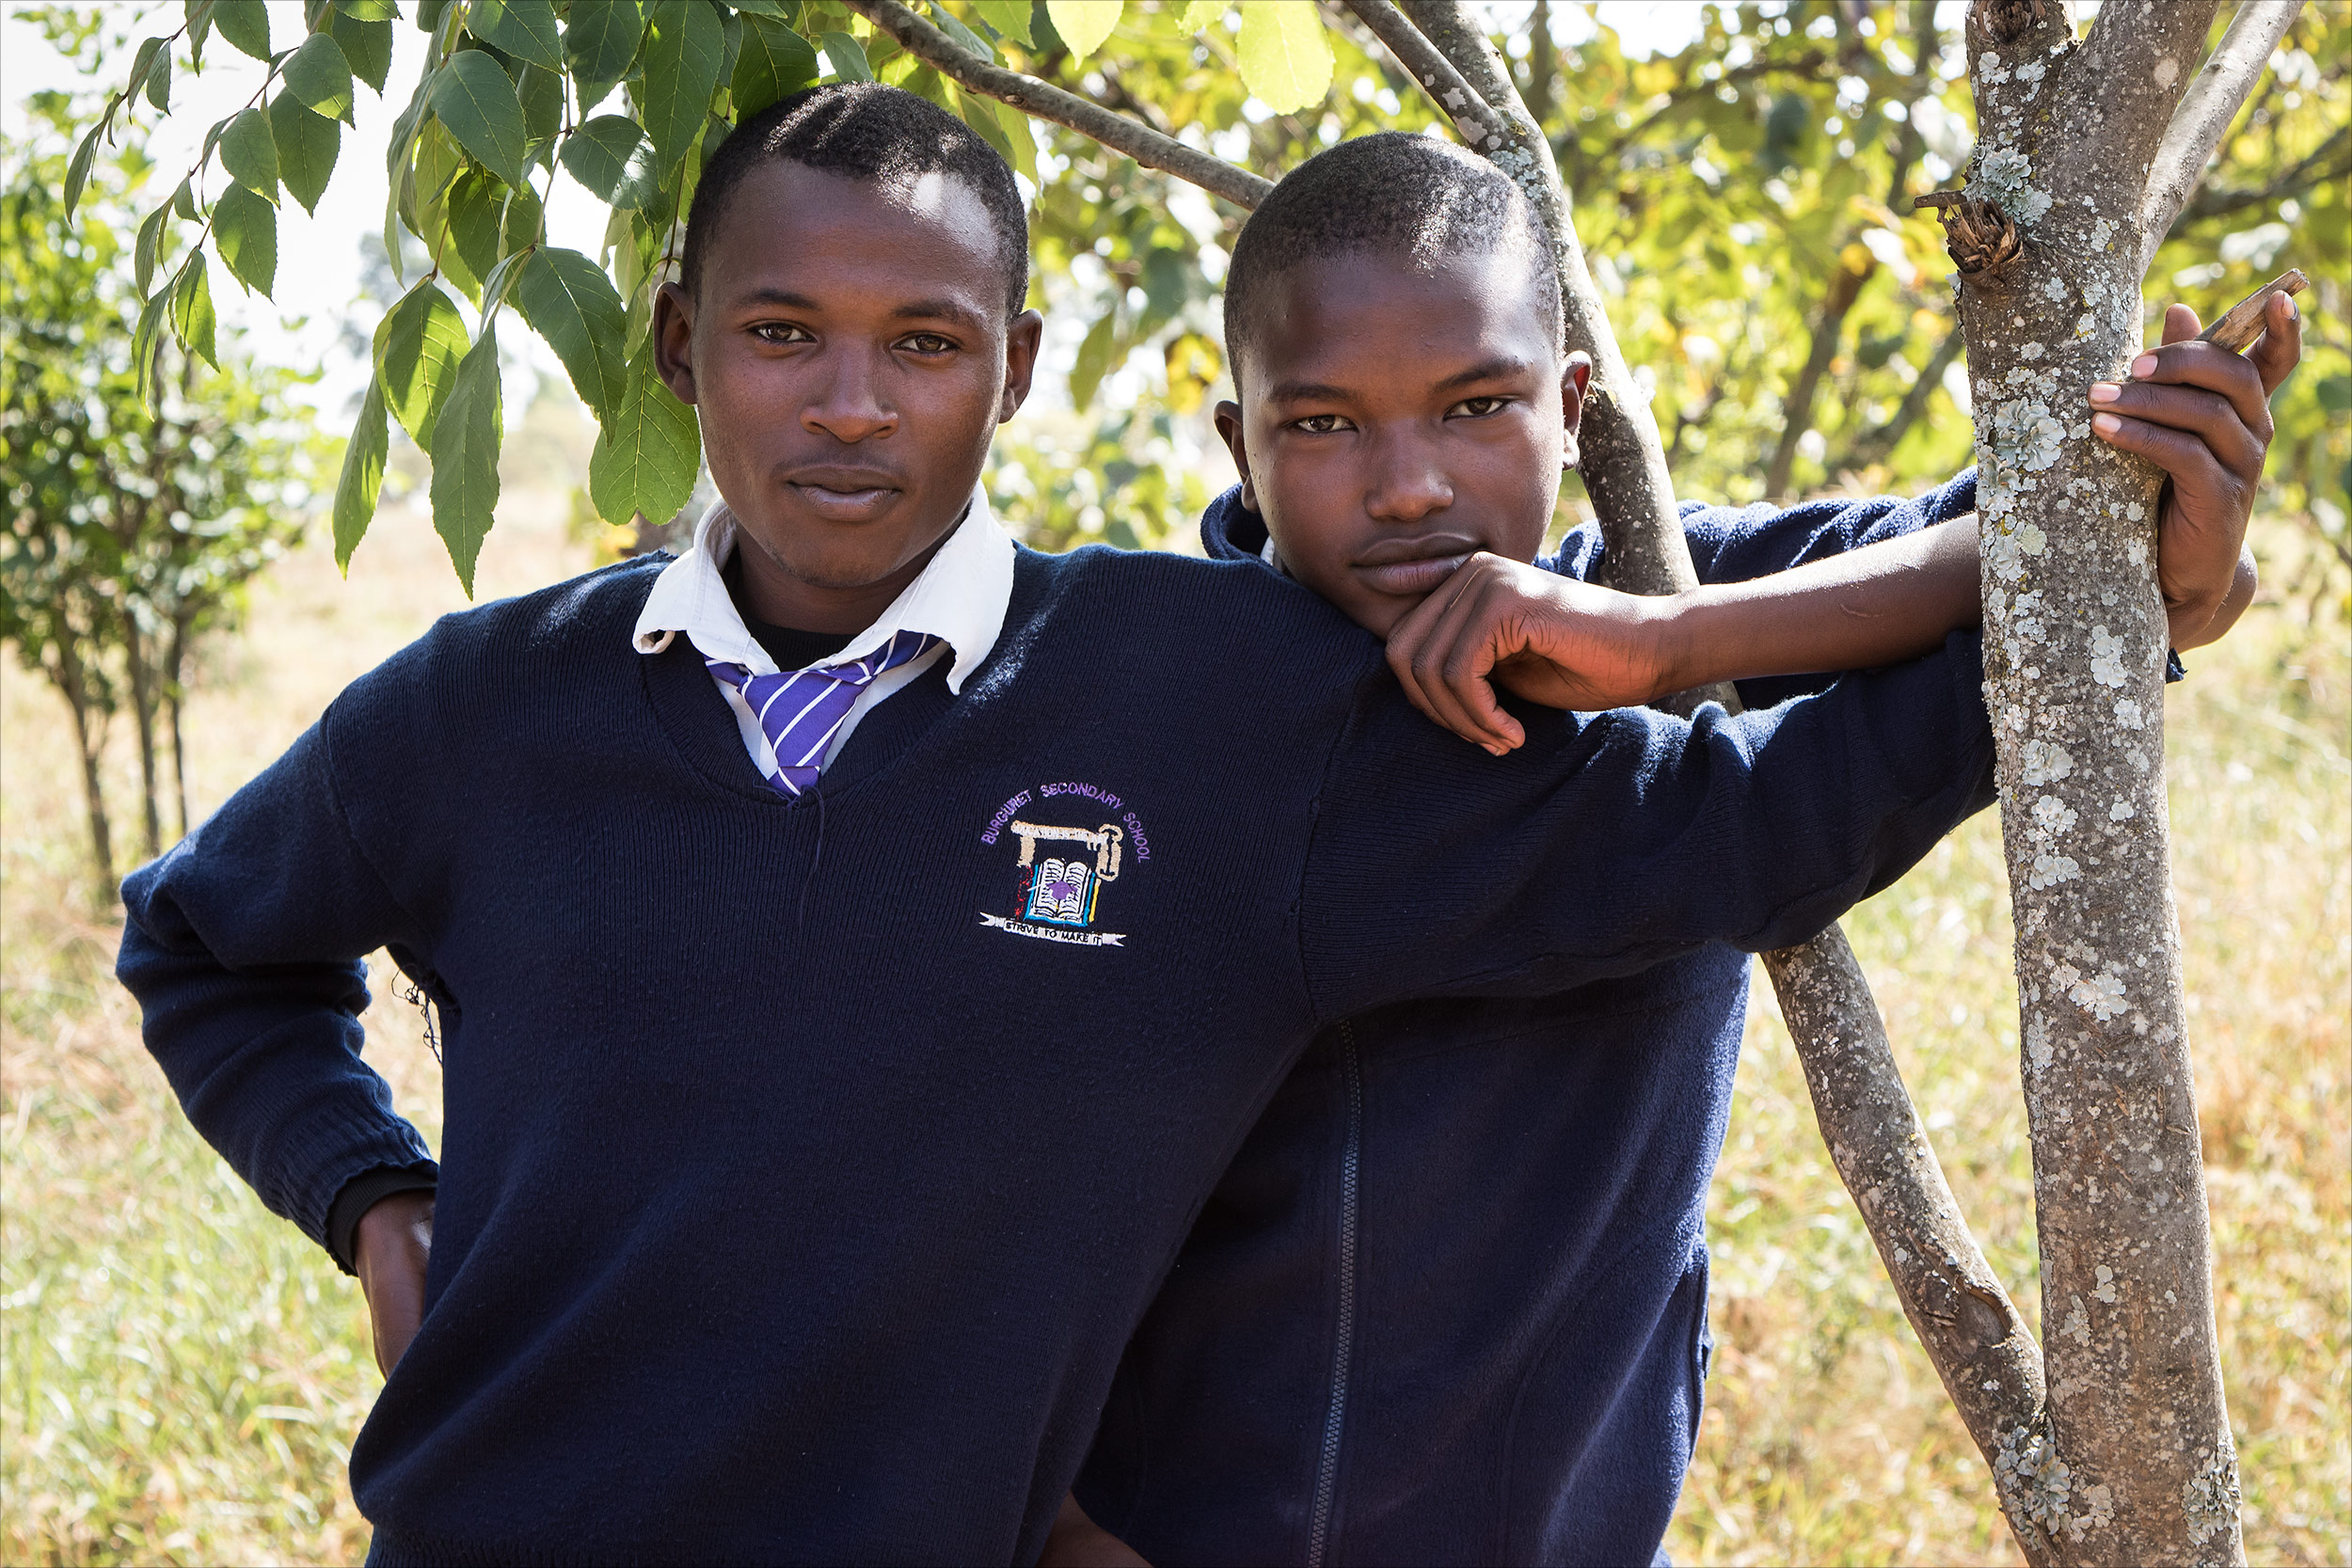 Secondary school students, Kenya